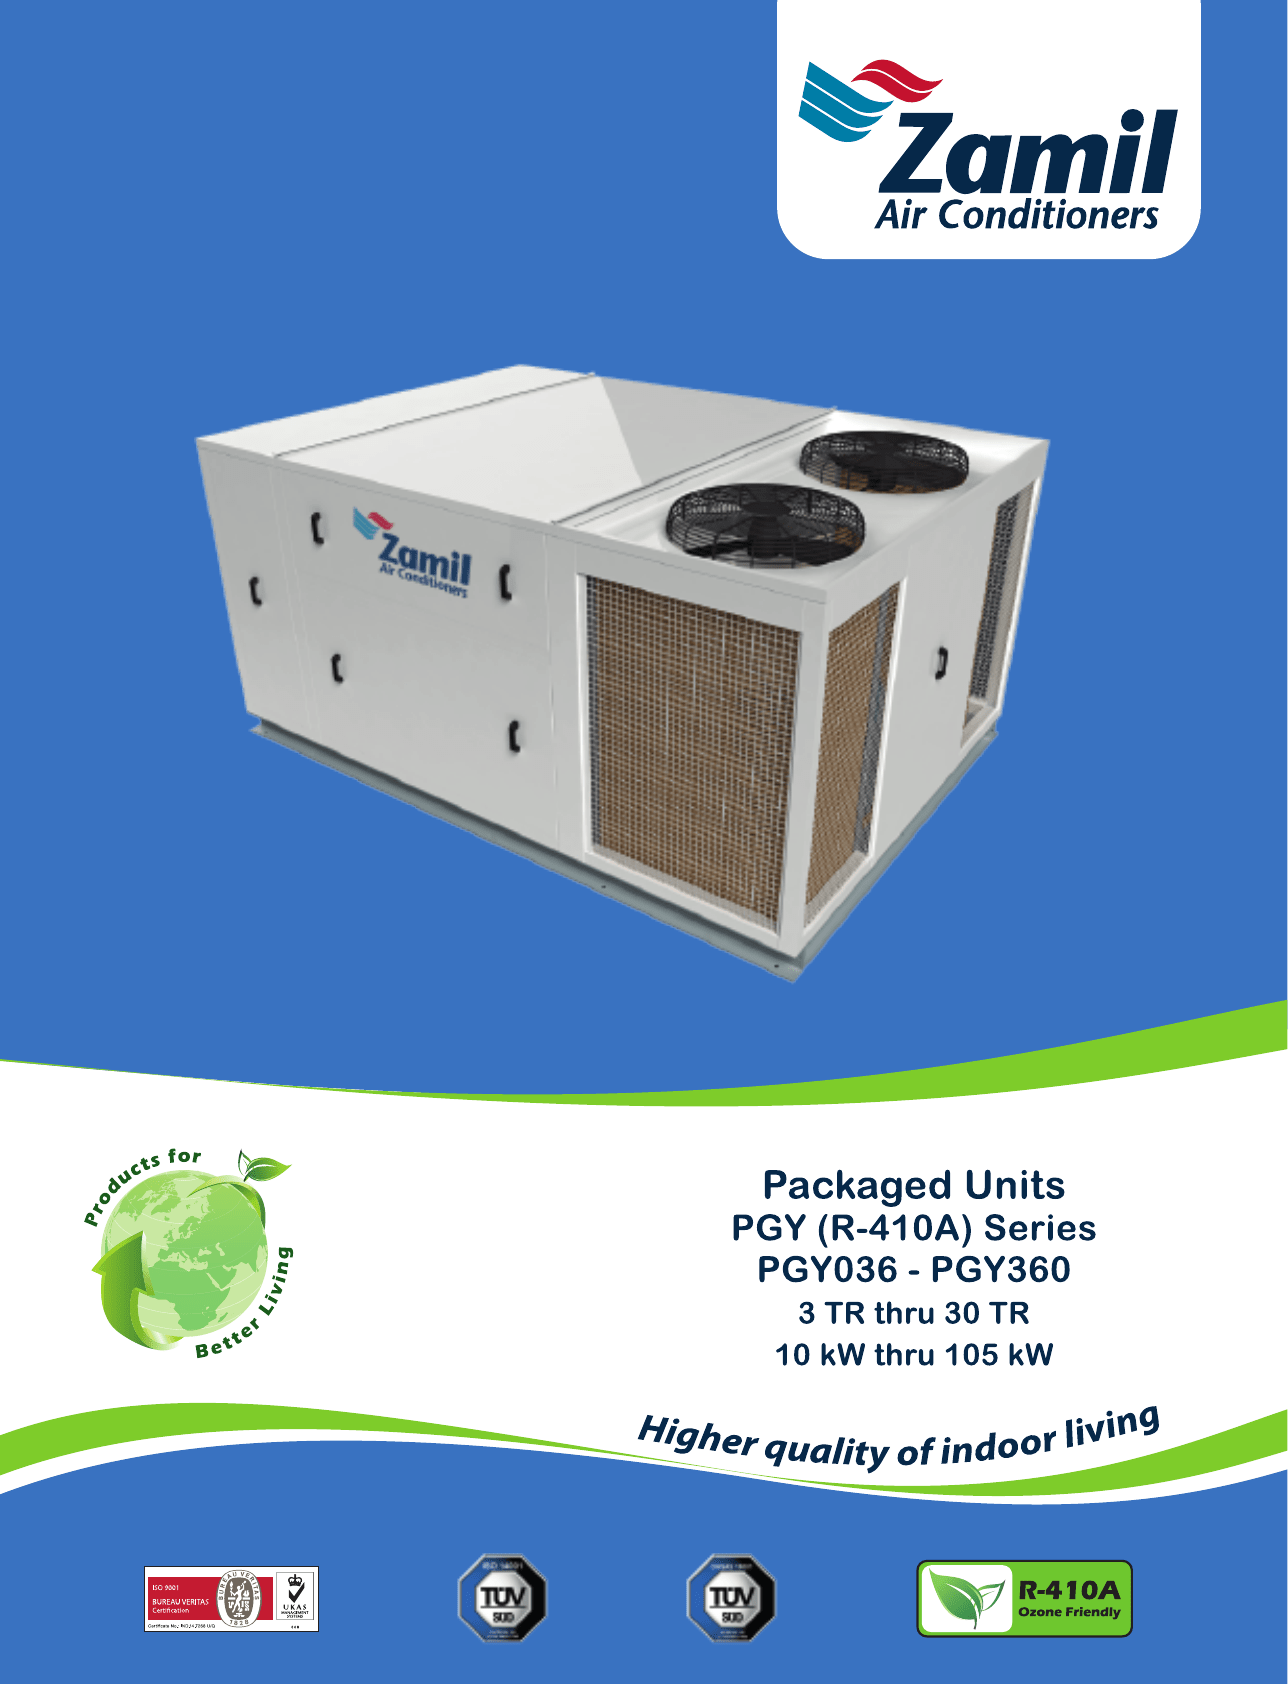 hight resolution of pgy r 410a series pmd zamil air conditioners